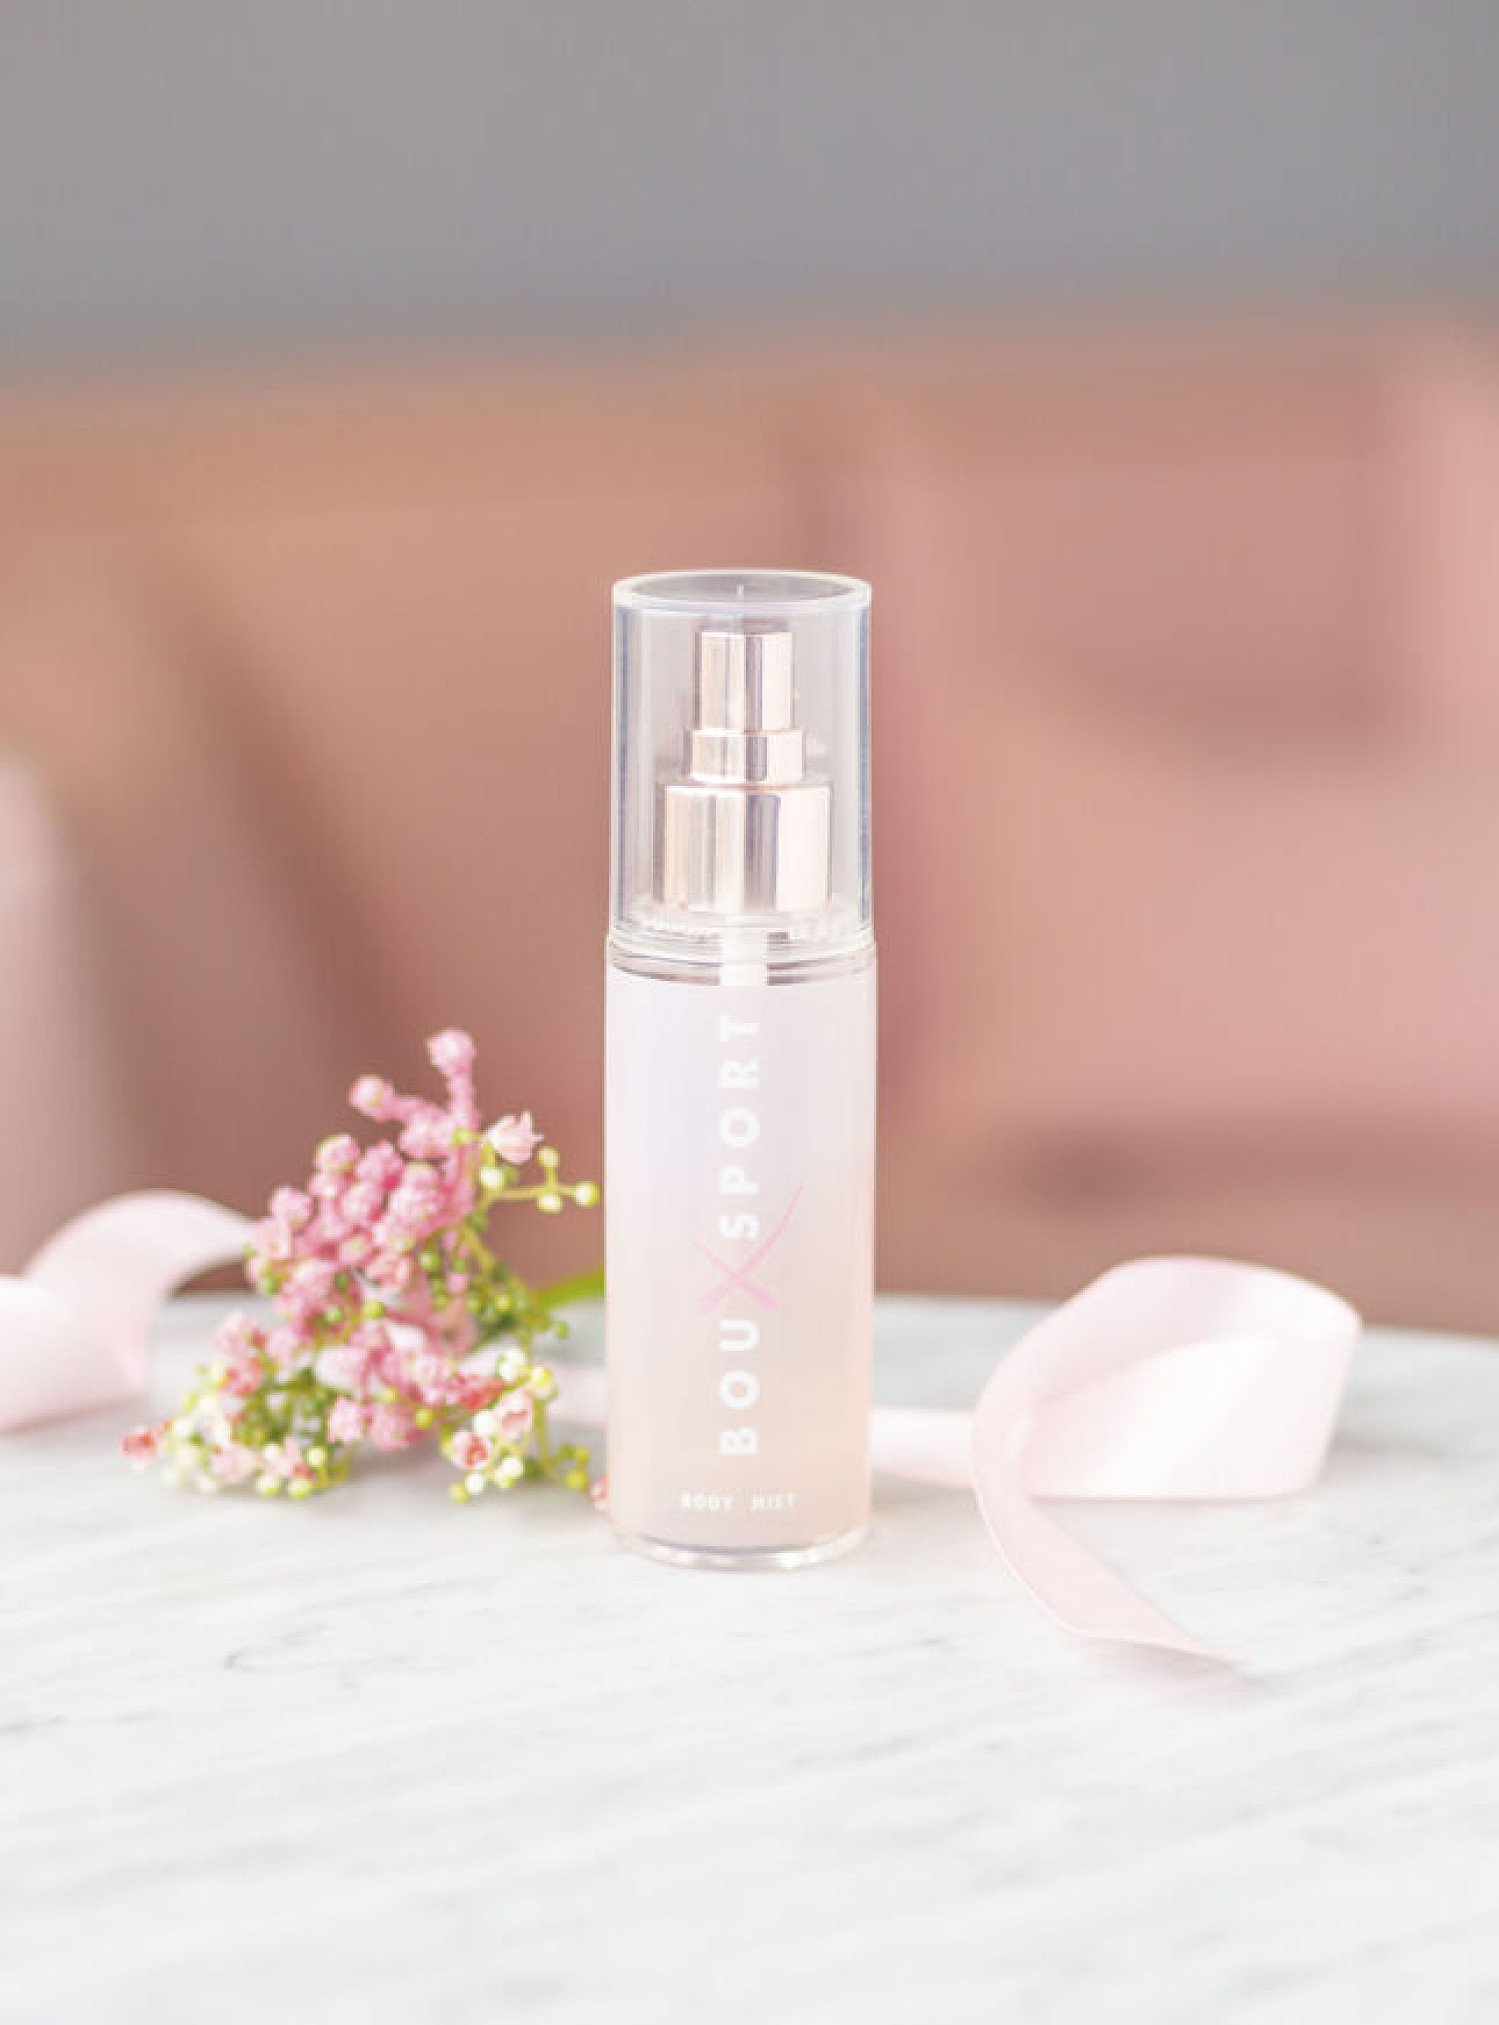 MOTHERS DAY GIFT IDEAS - Boux sport body mist - Rose Gold £8.00!